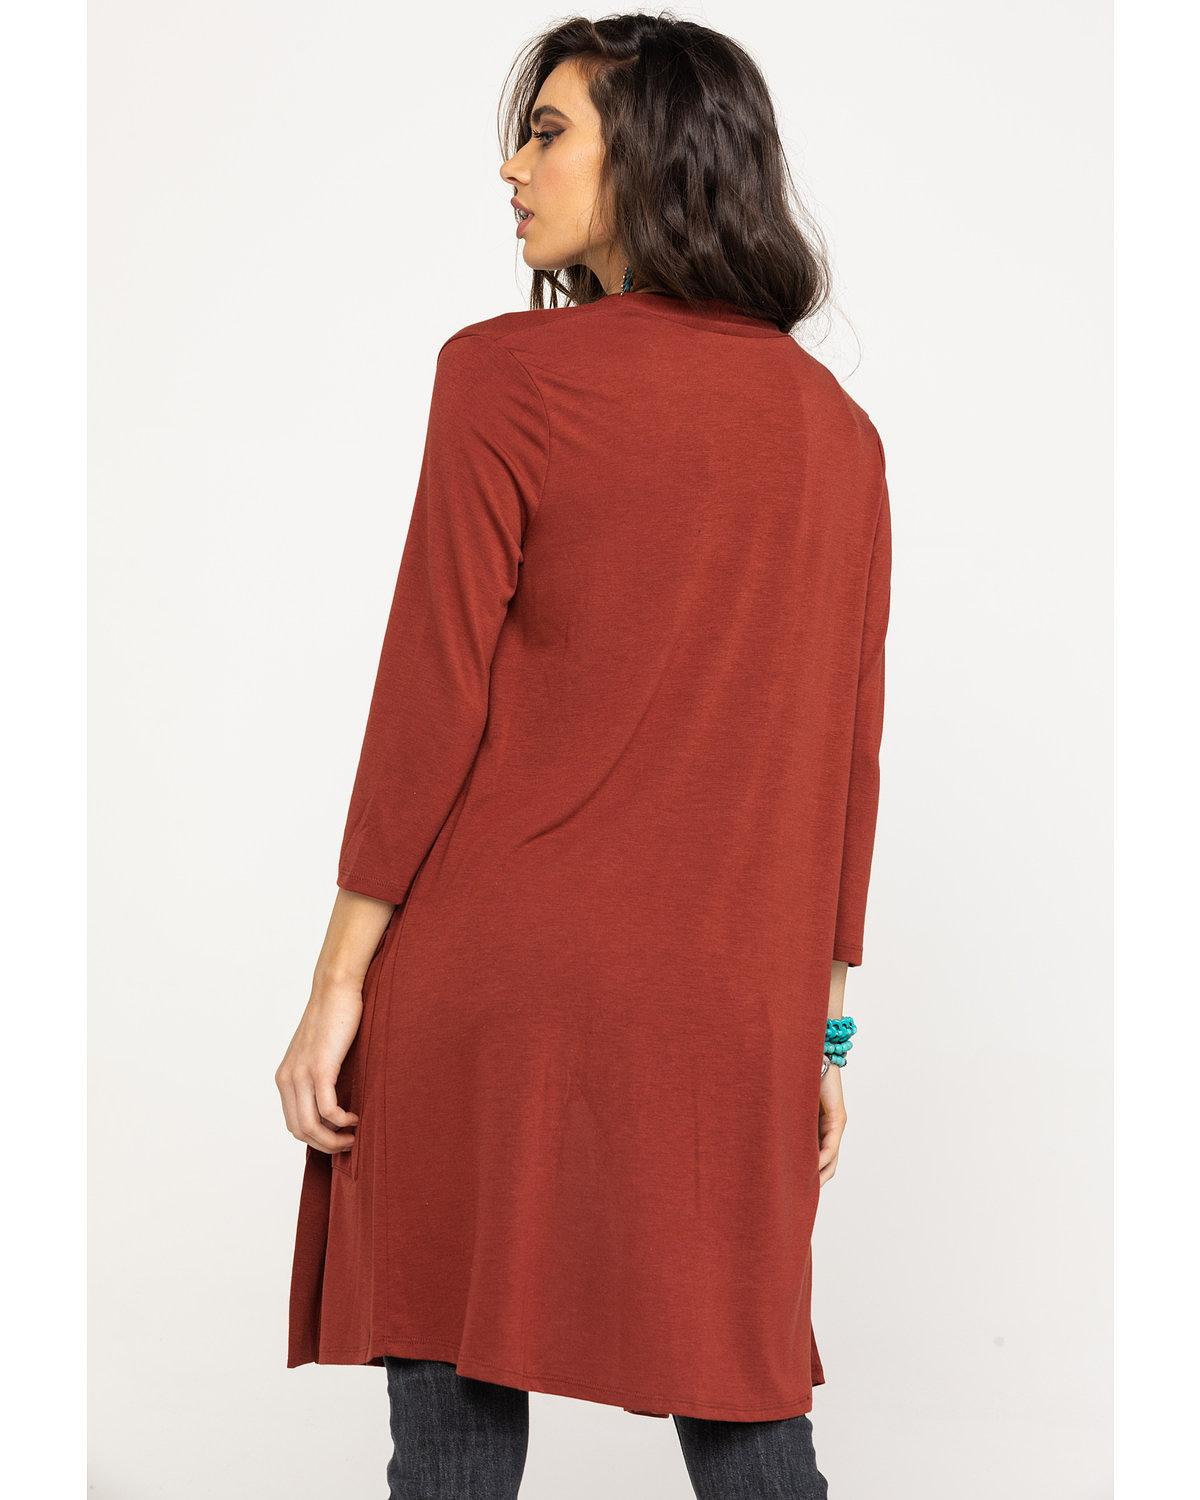 e6a9a859 Panhandle Women's White Label By Rust Copper Long Sleeve Knit Duster ...